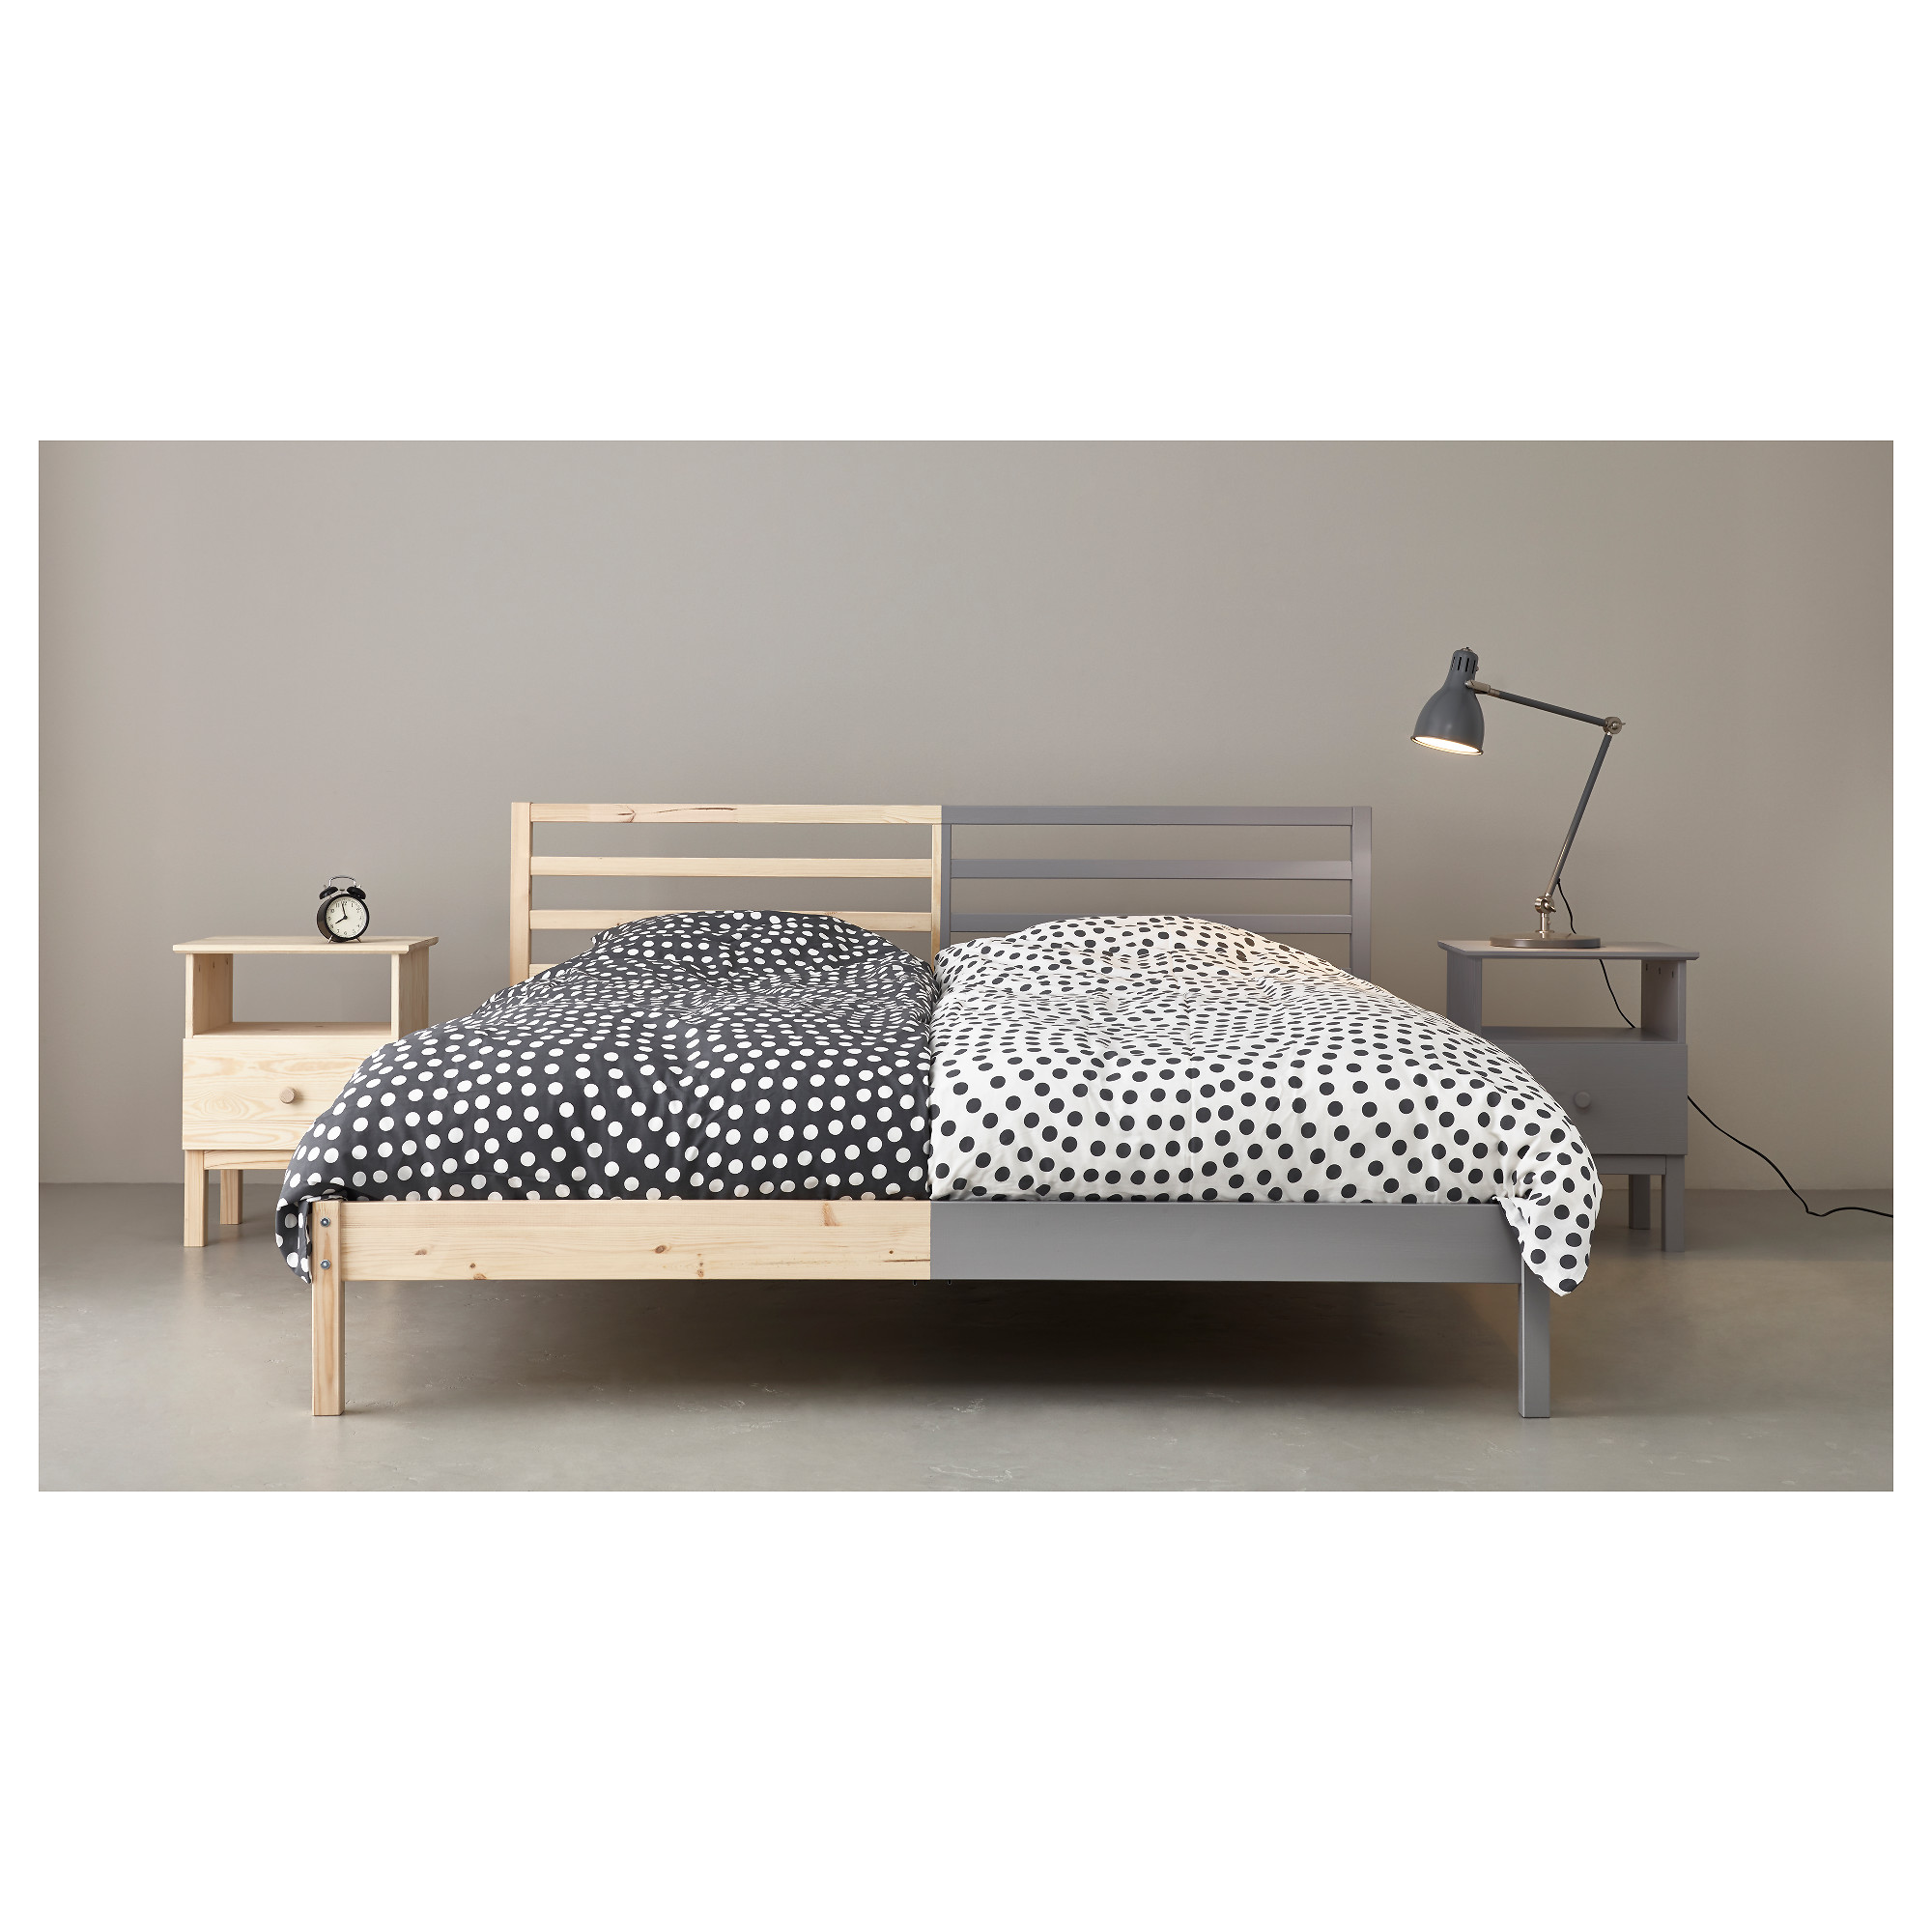 TARVA Bed frame Queen Luröy IKEA